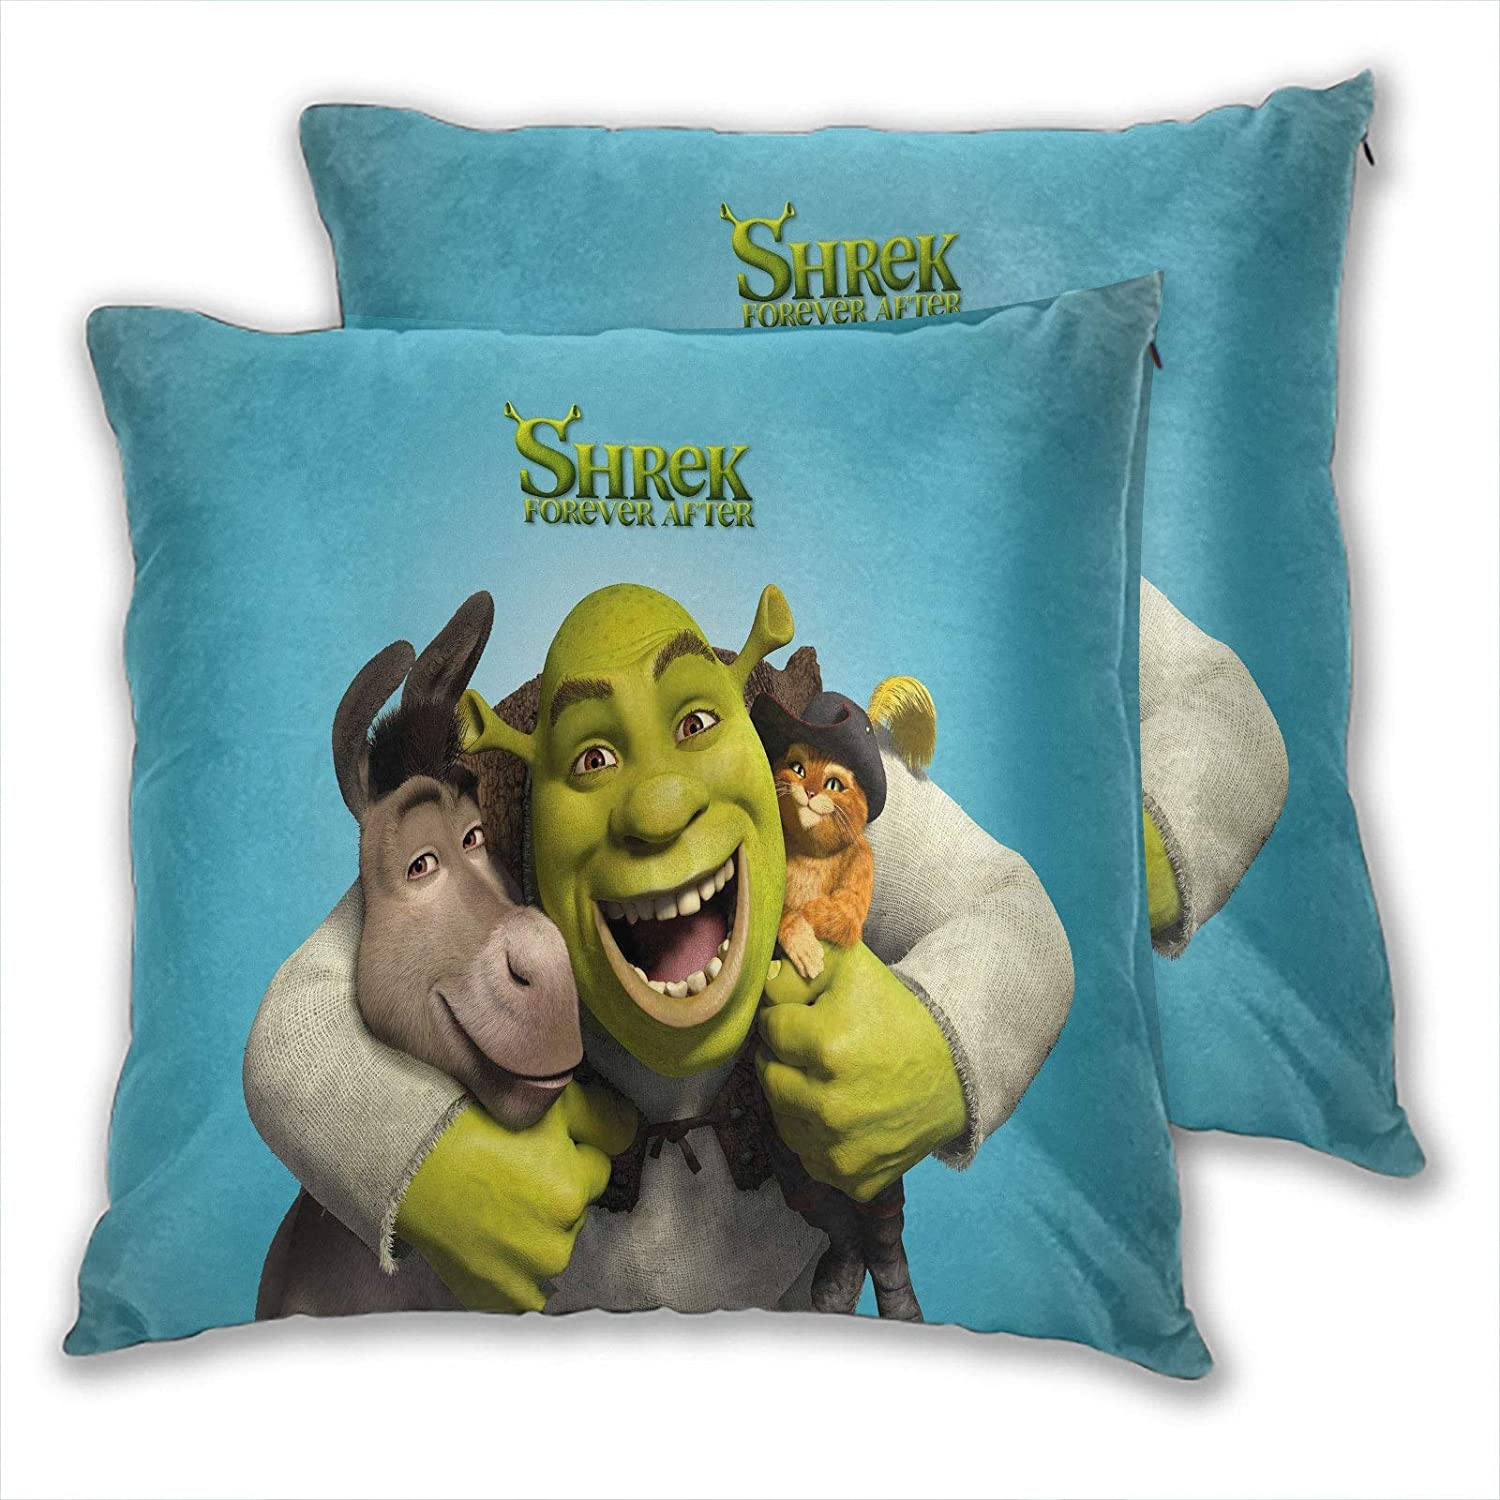 Throw Pillow Covers for Couch Shrek The Halls Donkey, Puss in Boots Home Decor Car Living Room 22x22 Inch Set of 2